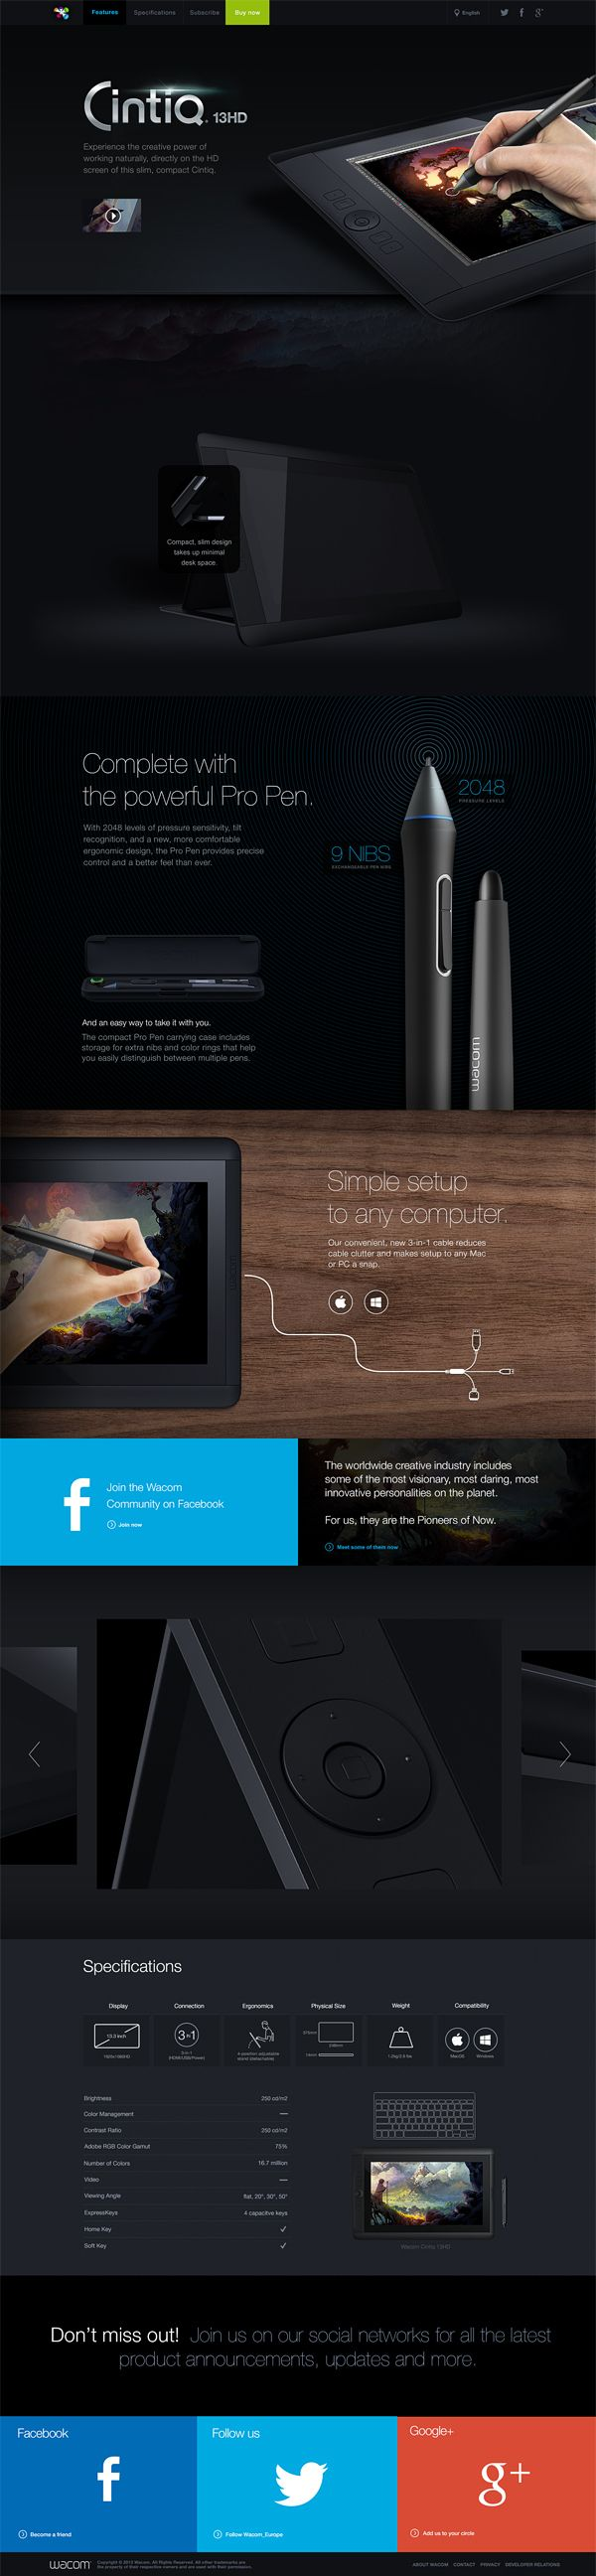 Cintiq13HD Campaign Page on Behance